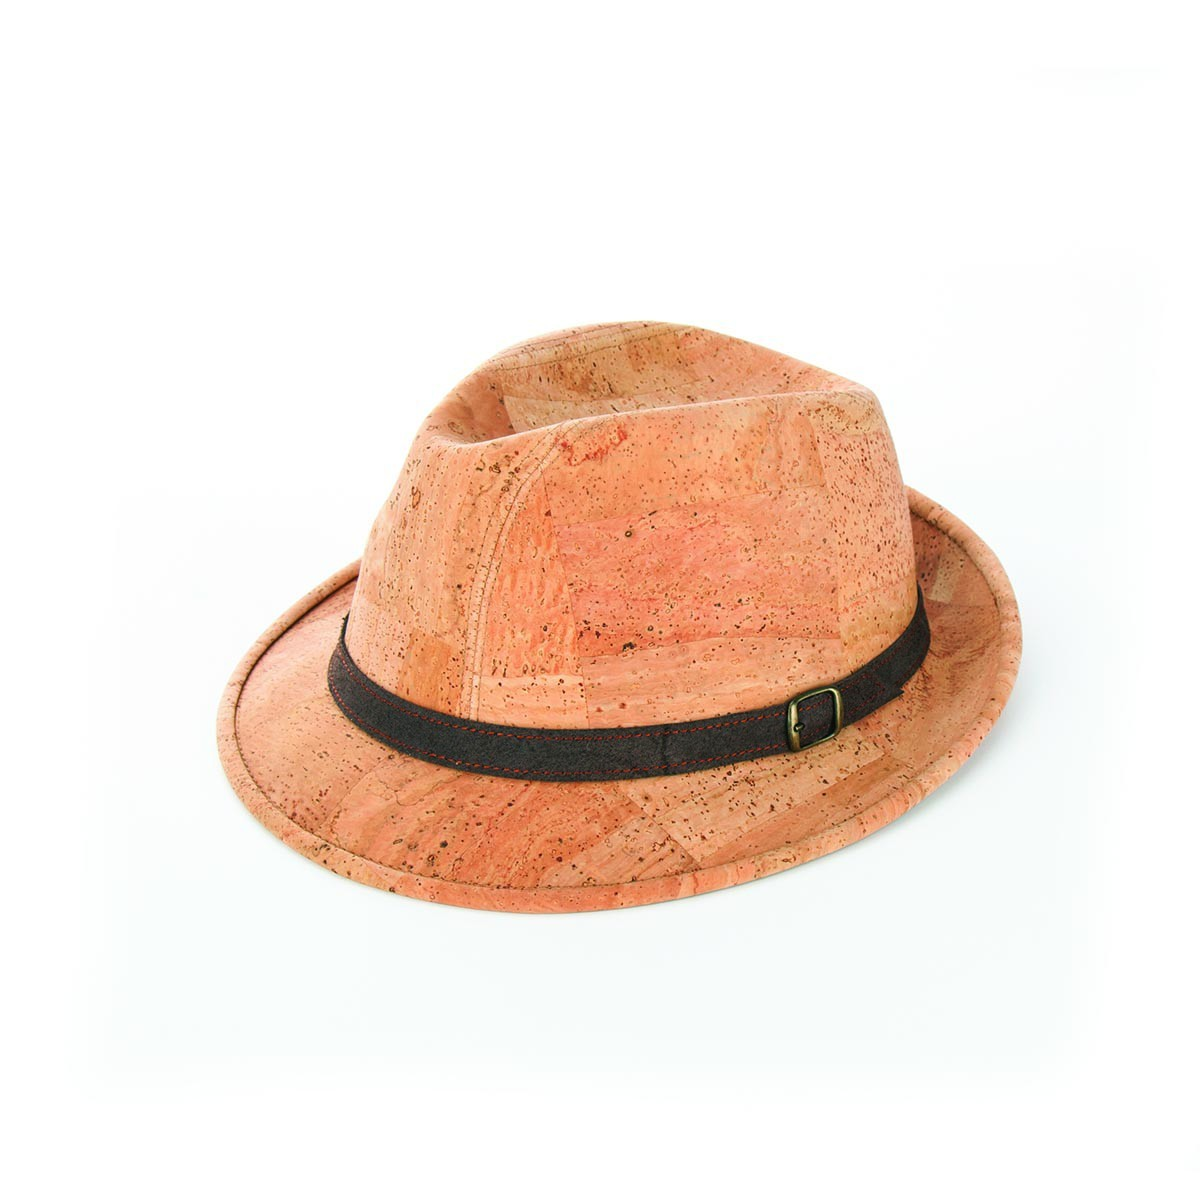 Accessori moda - Cappelli in sughero - Linea Vegan  be3c4ca11c21